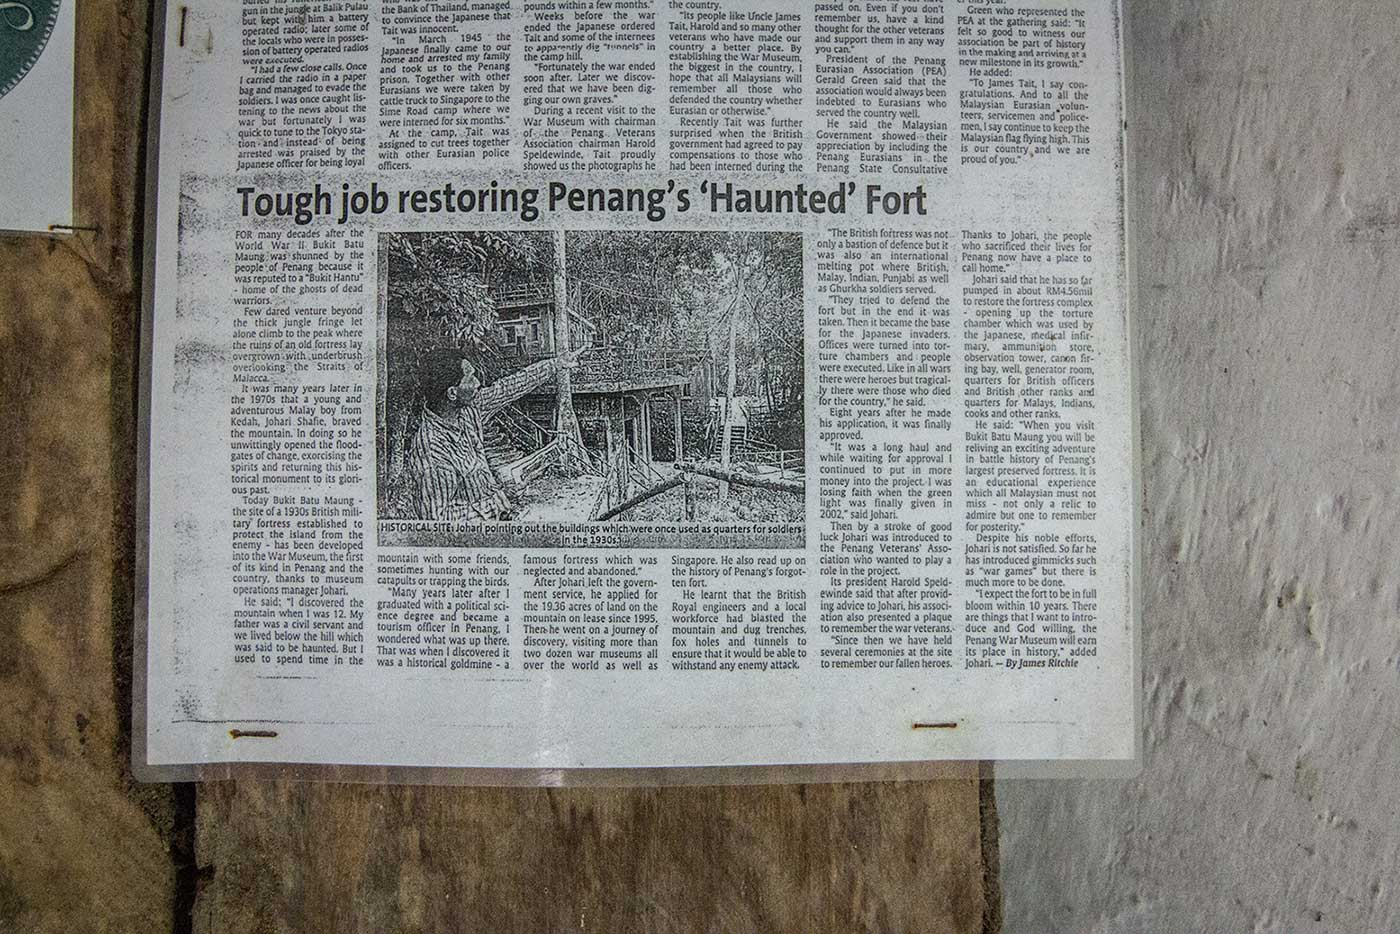 """Tough job restoring Penang's 'Haunted' Fort."" A local newspaper clipping from 2002."